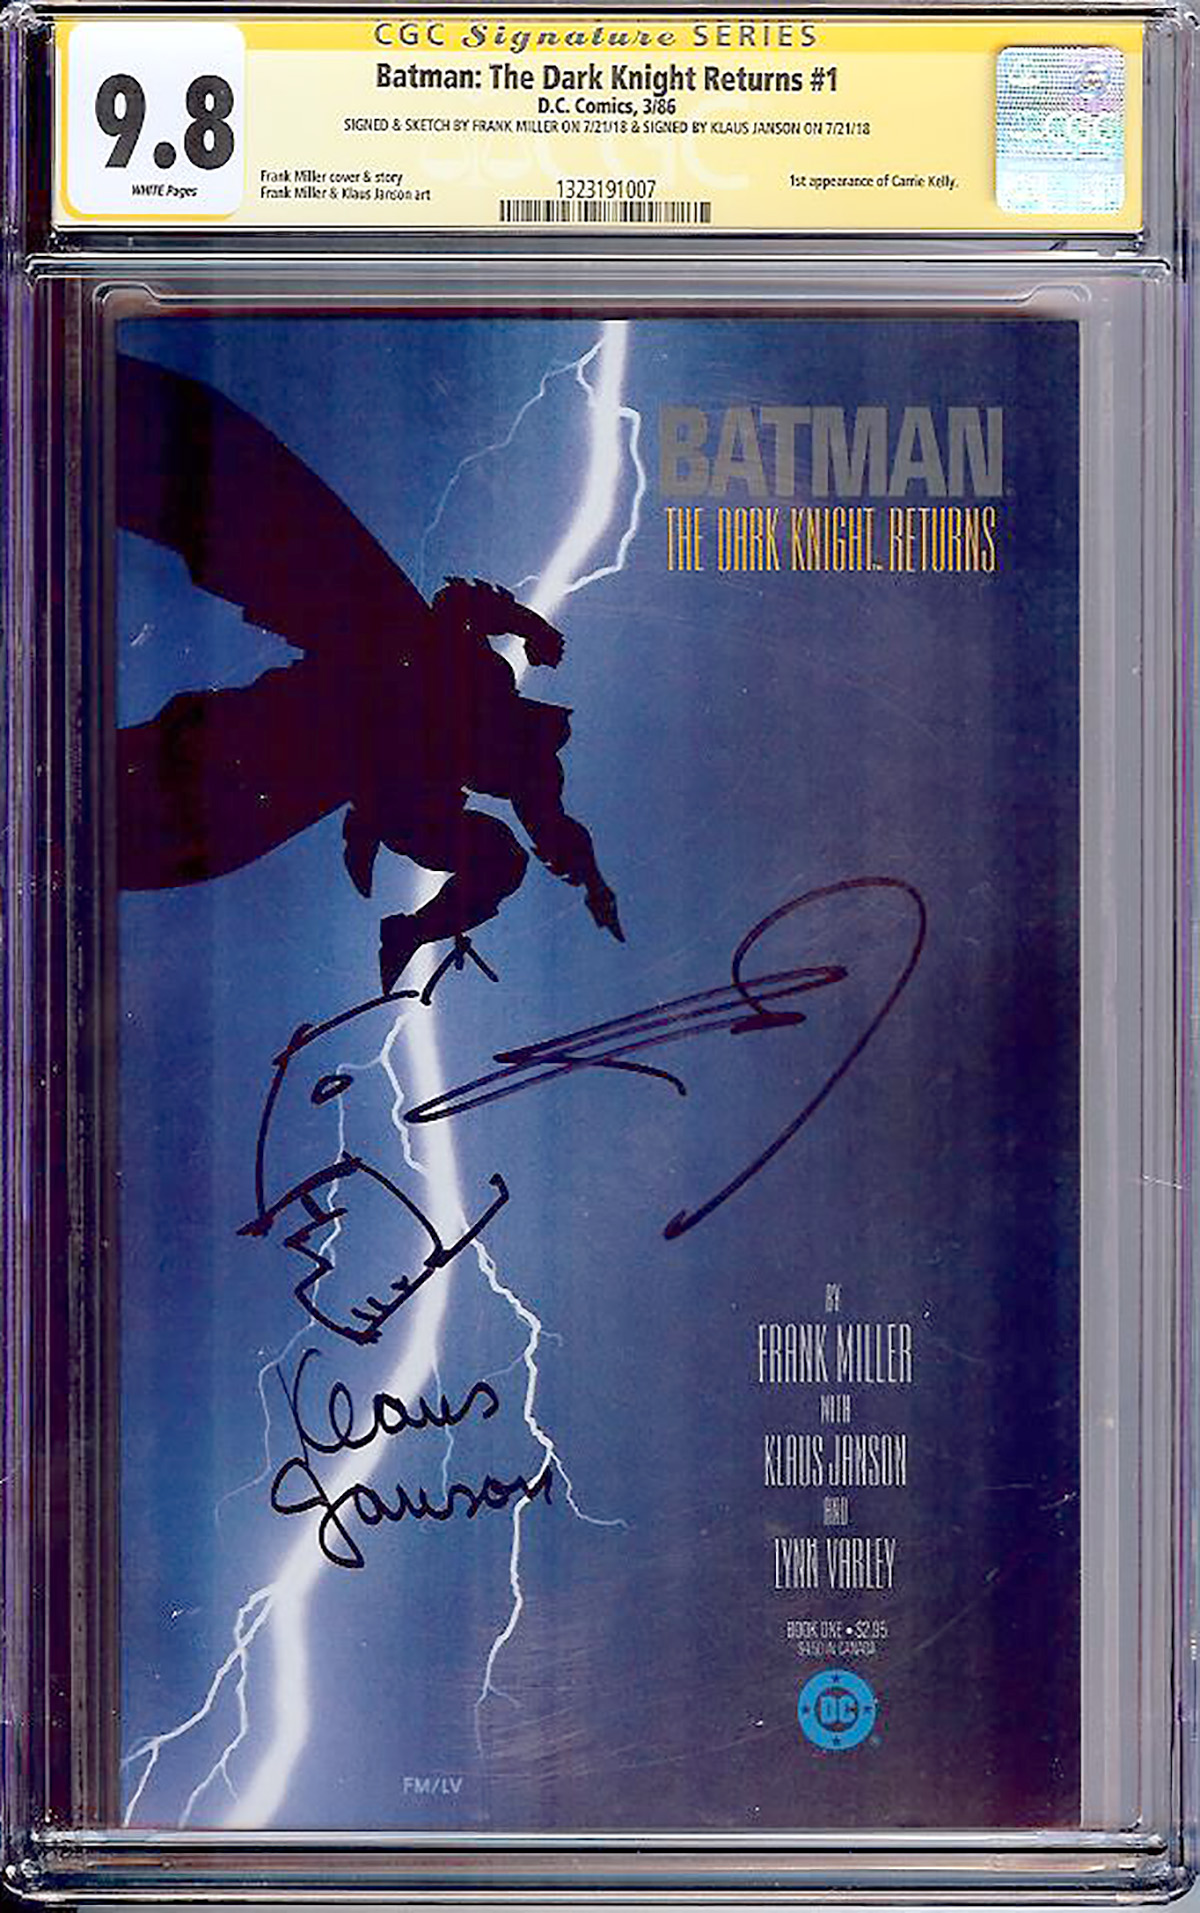 Batman: The Dark Knight Returns #1 CGC 9.8 w CGC Signature SERIES